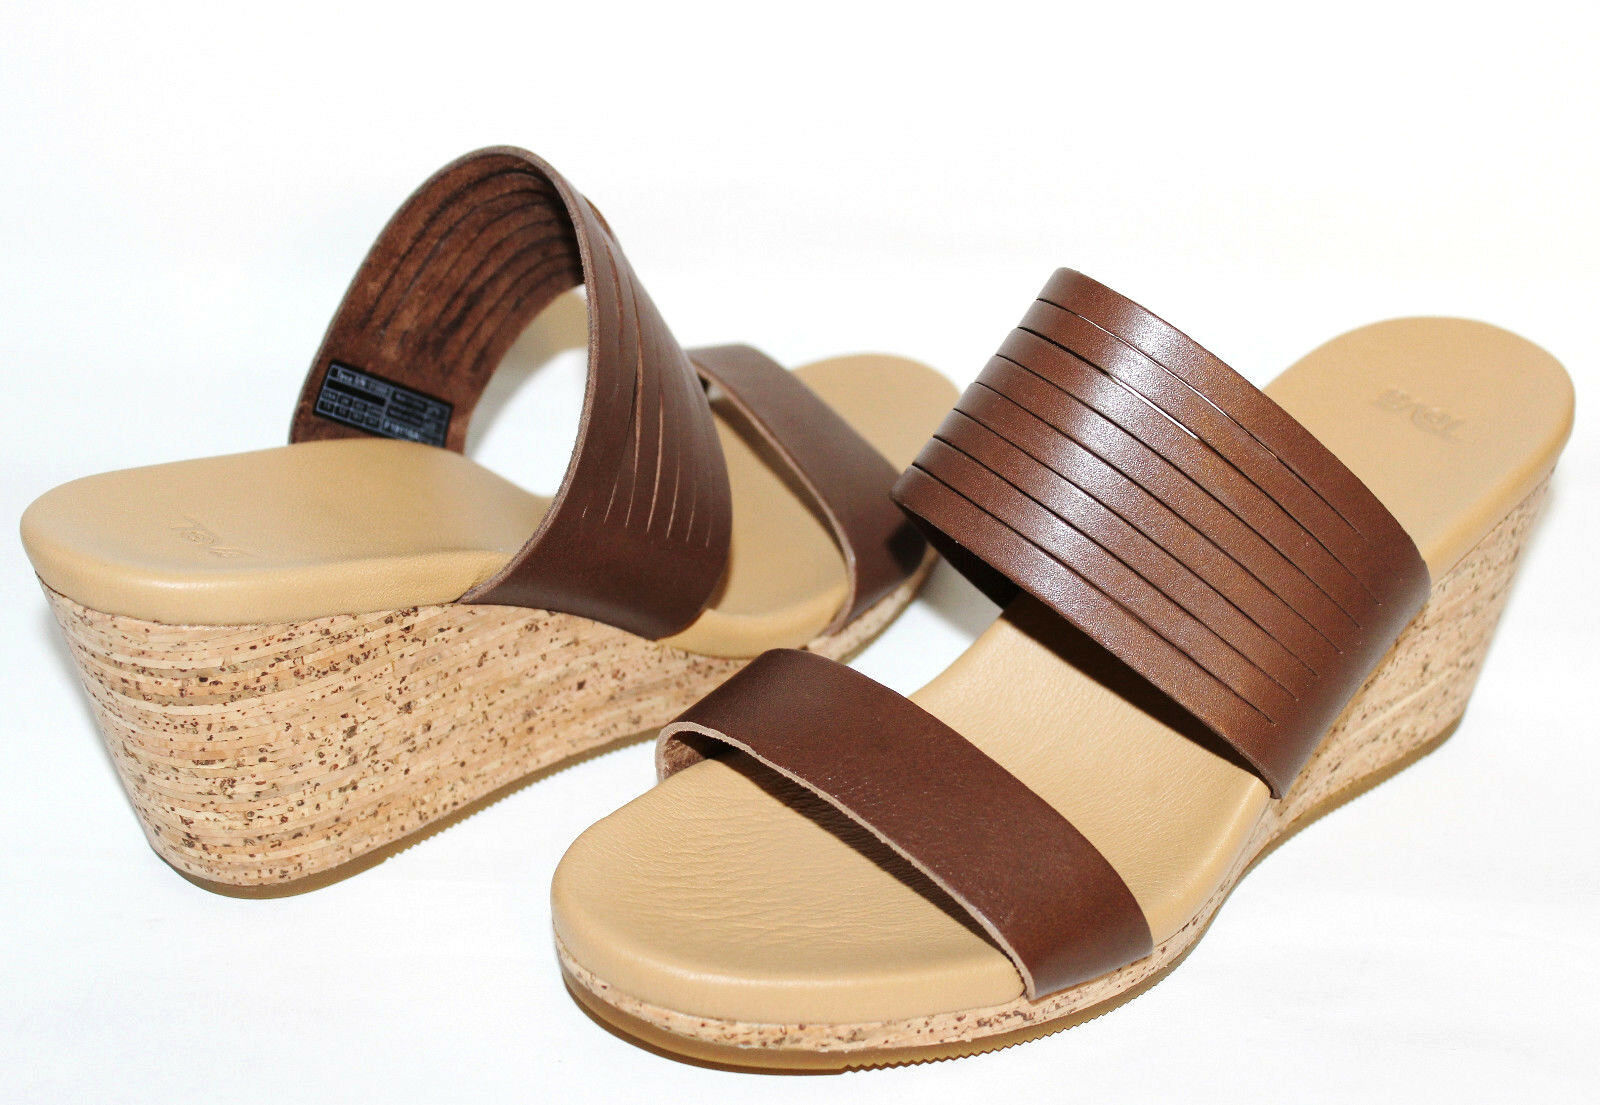 TEVA Brown Premium Leather 2.5 Cork Wedge Slide Comfort Sandal 10 M NEW L@@K